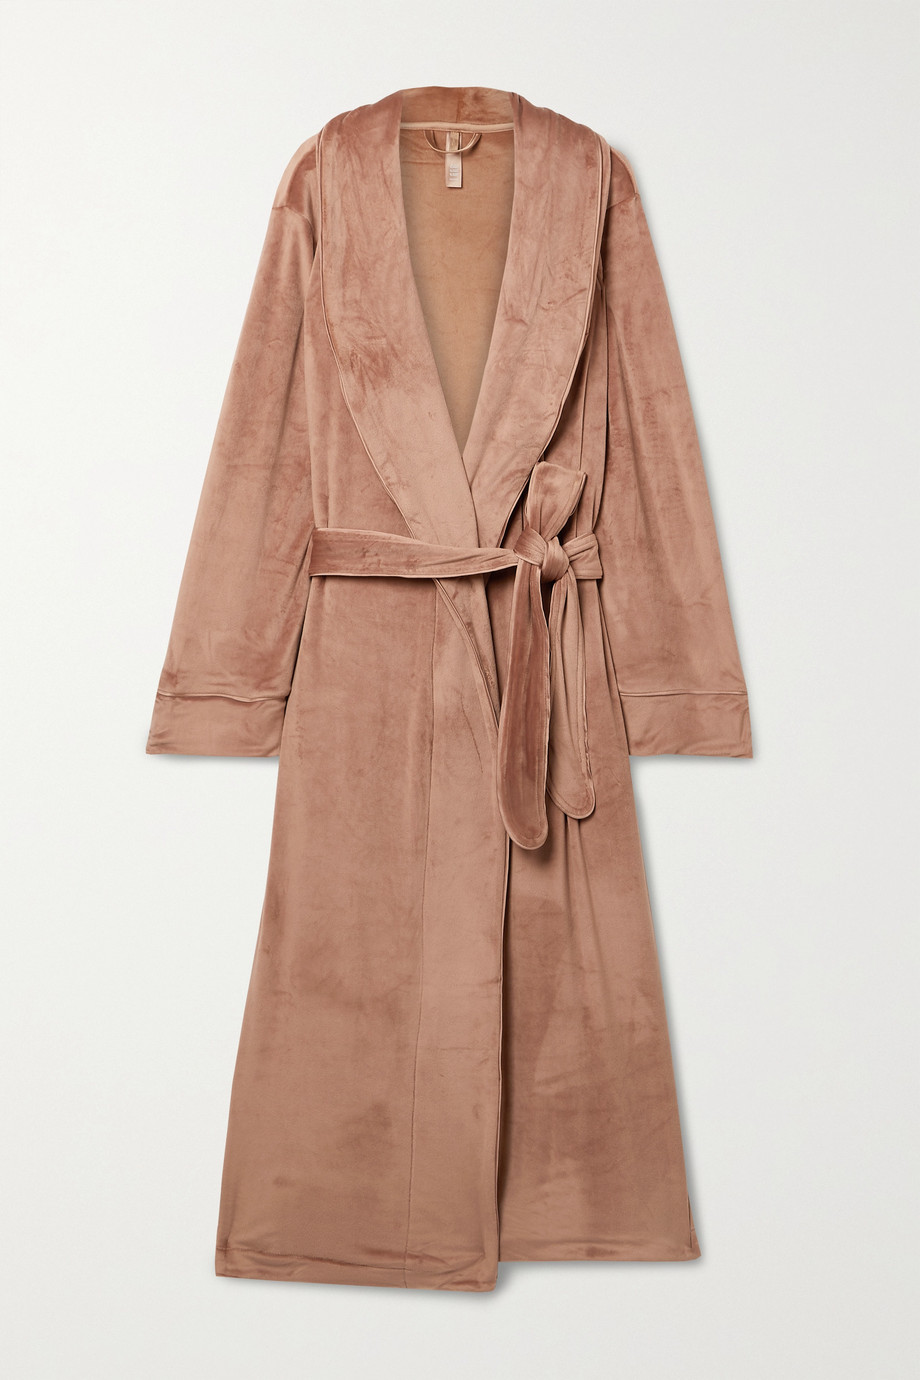 SKIMS Velour robe - Sienna